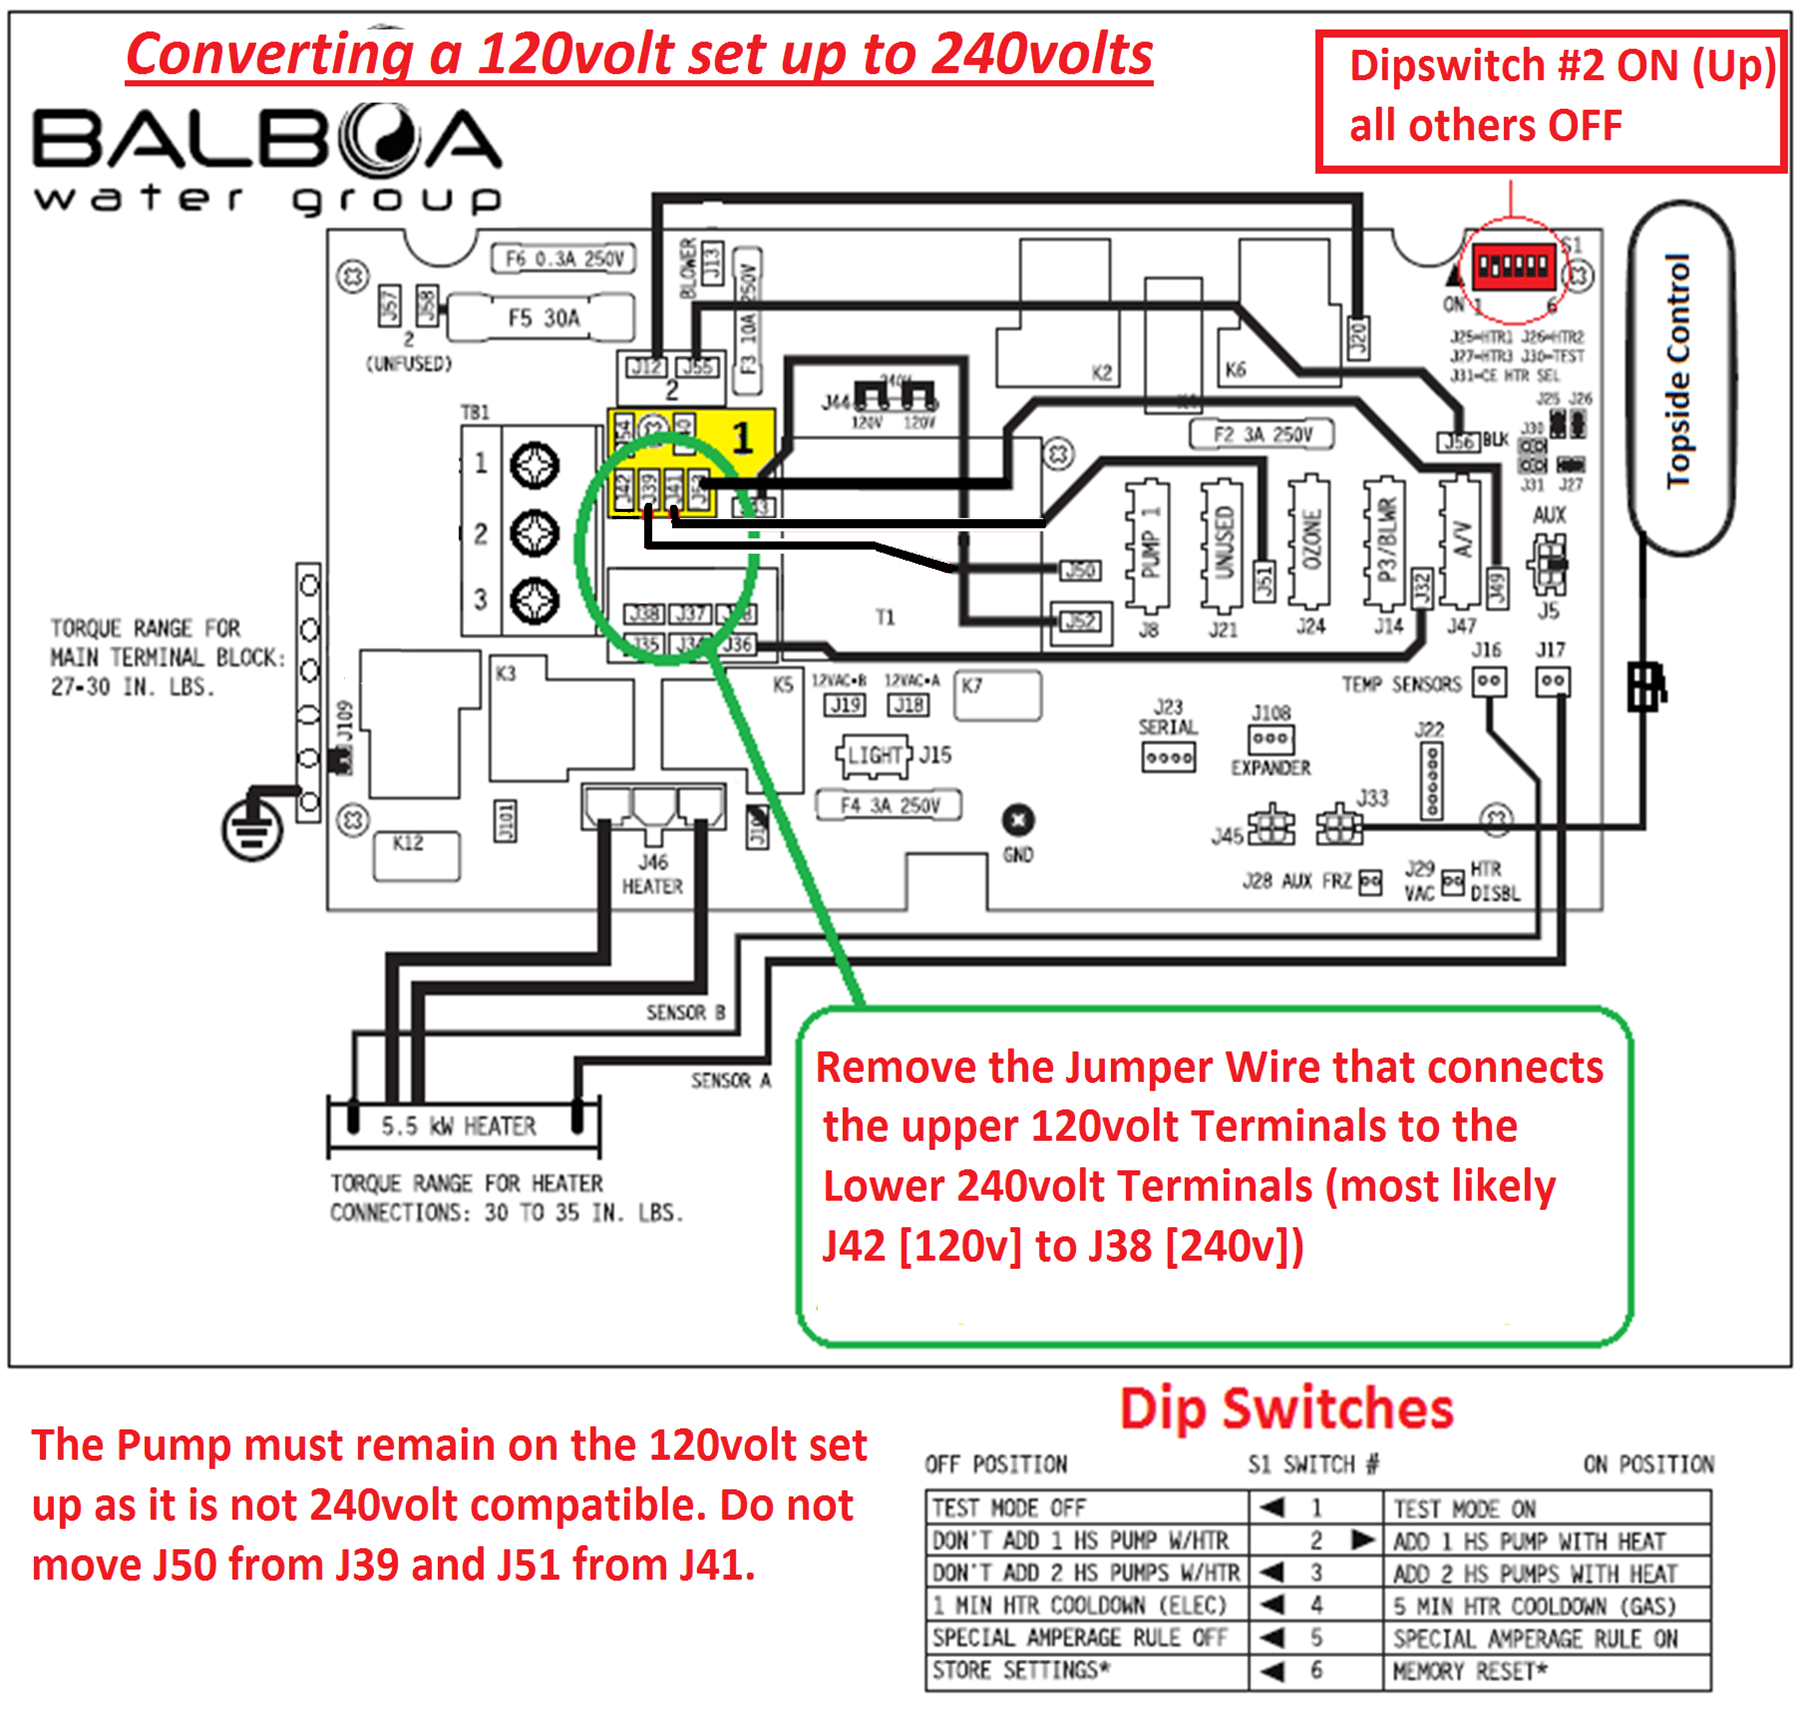 medium resolution of electrical installation converting a 120v balboa bp to 240v 120v hot tub wiring hot tub wiring 120v